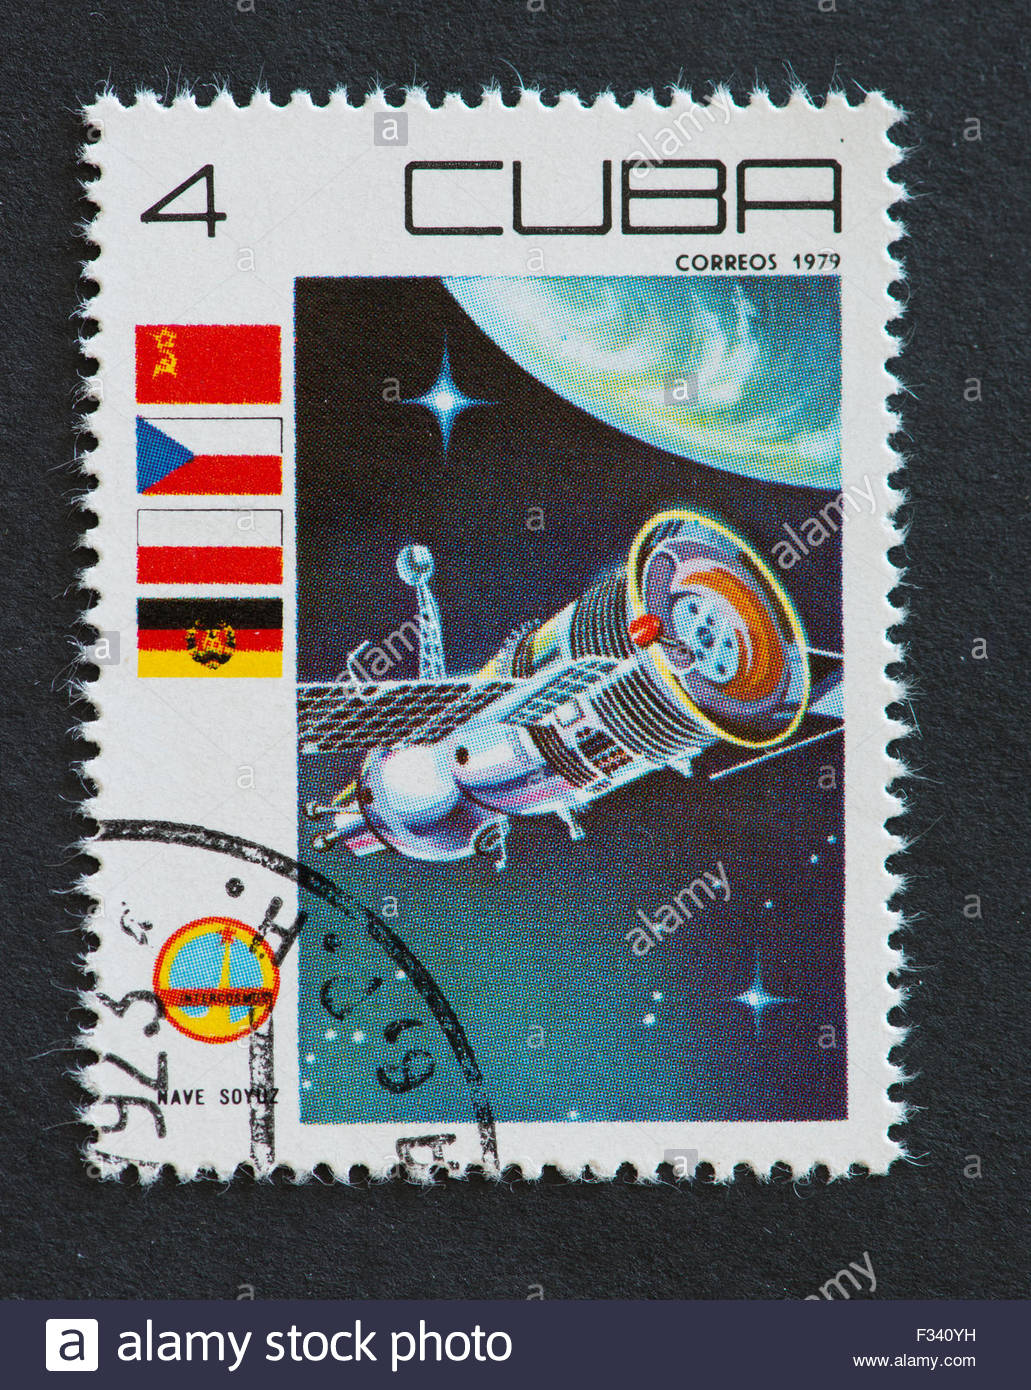 Cuban 1979 commemorative stamp from the 'Intercosmos' series depicting the Soyuz Spaceship. The stamp also - Stock Image